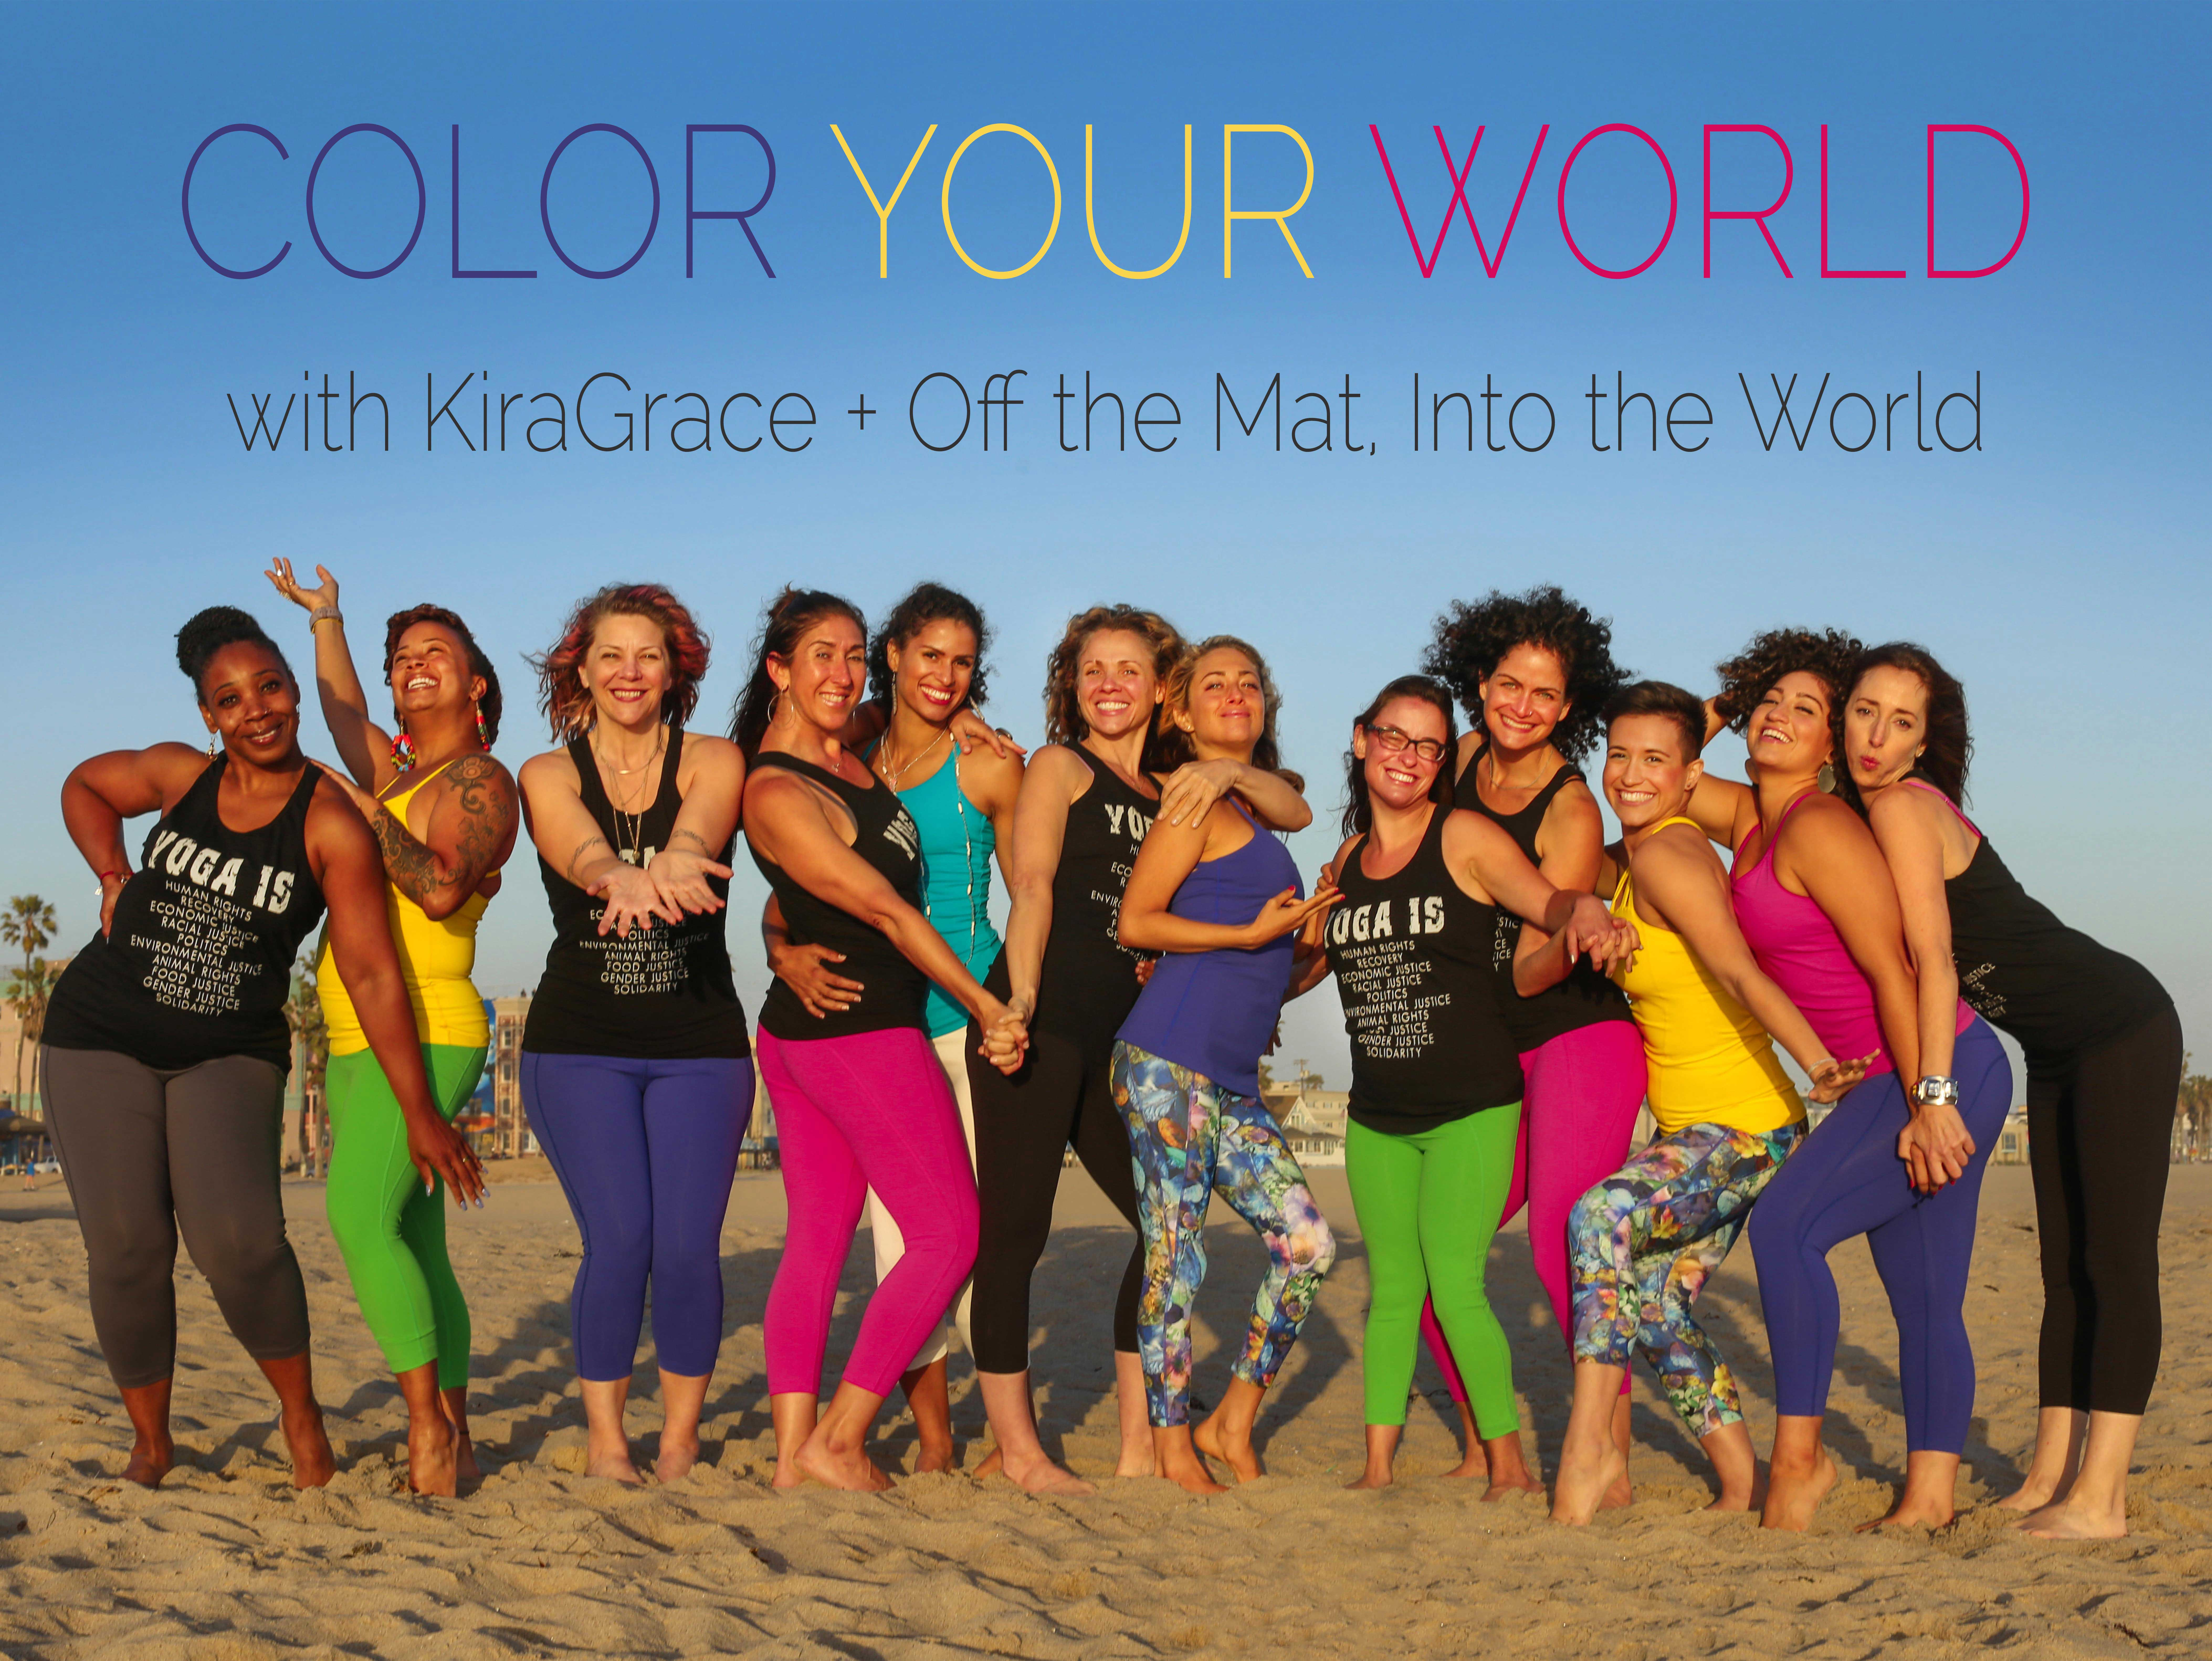 coloryourworld-wholesale-poster-min-1-.jpg